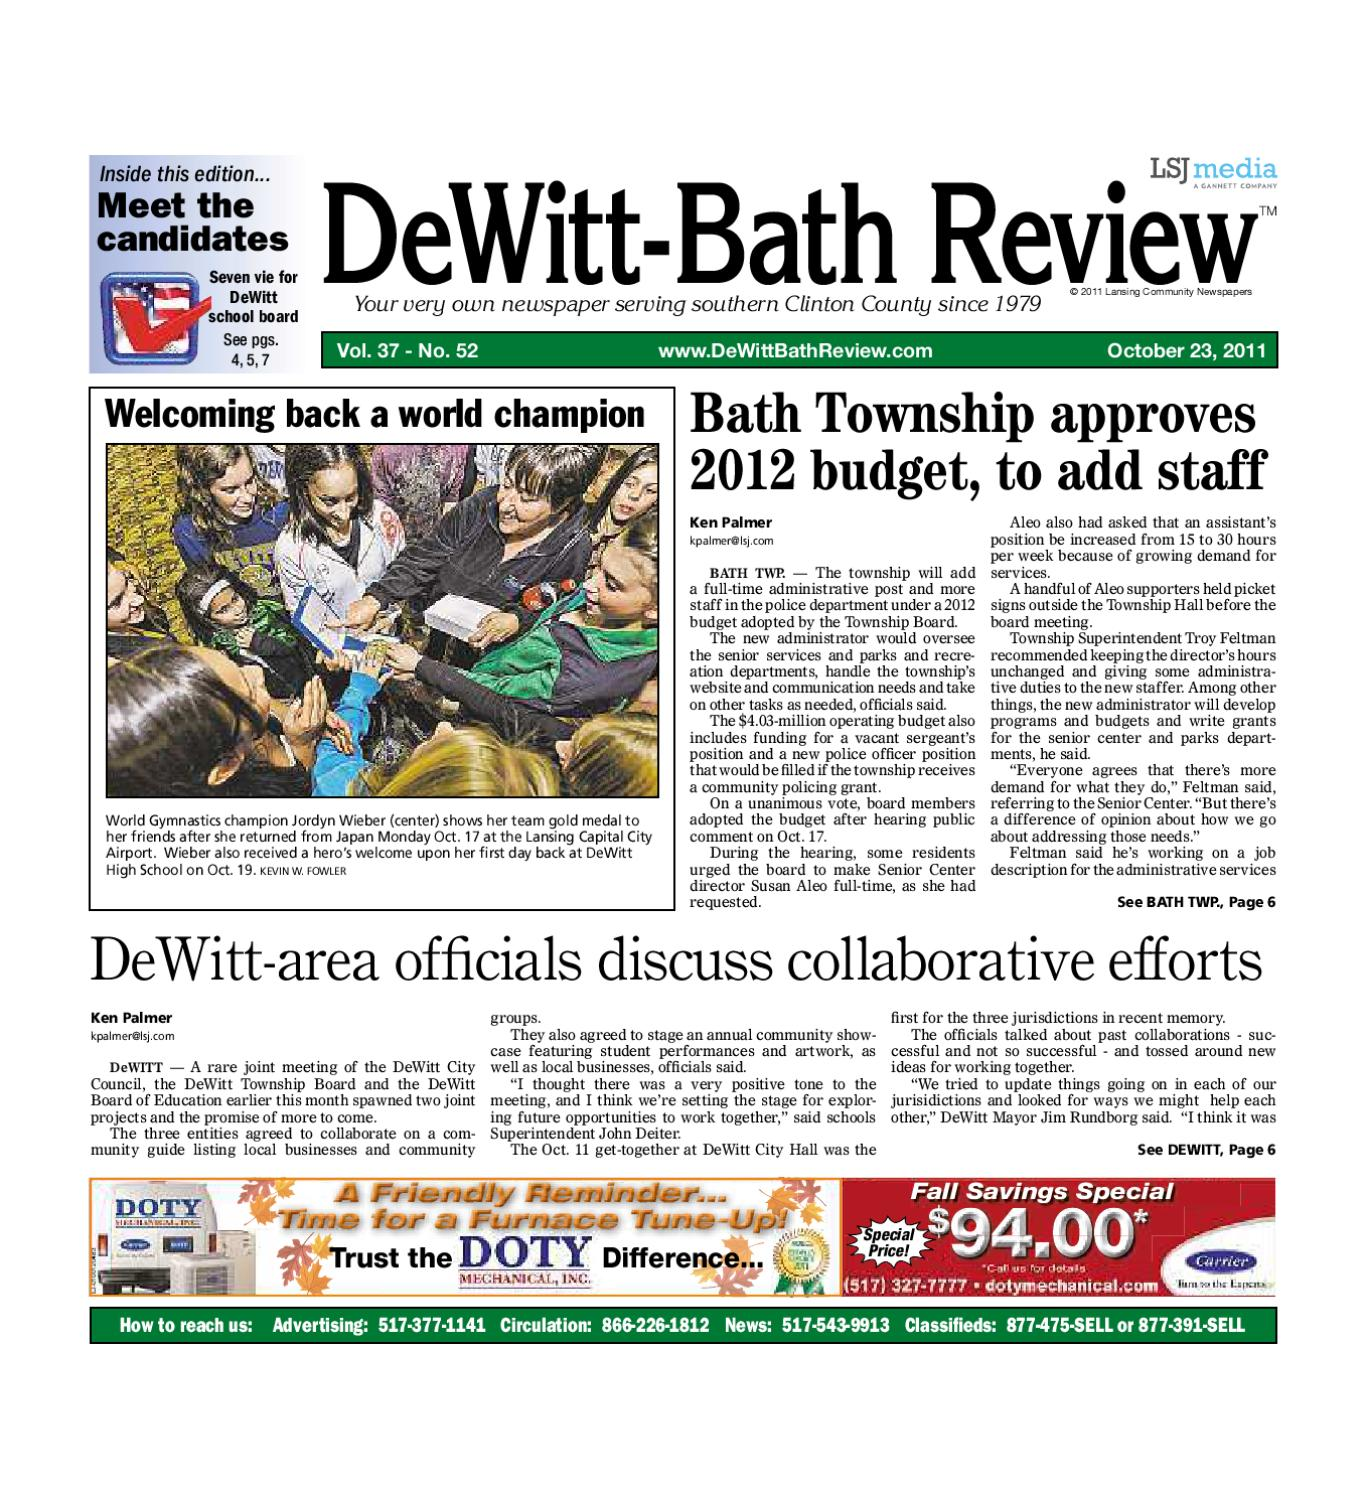 /dbr_10_23_11 by Lansing State Journal - Issuu